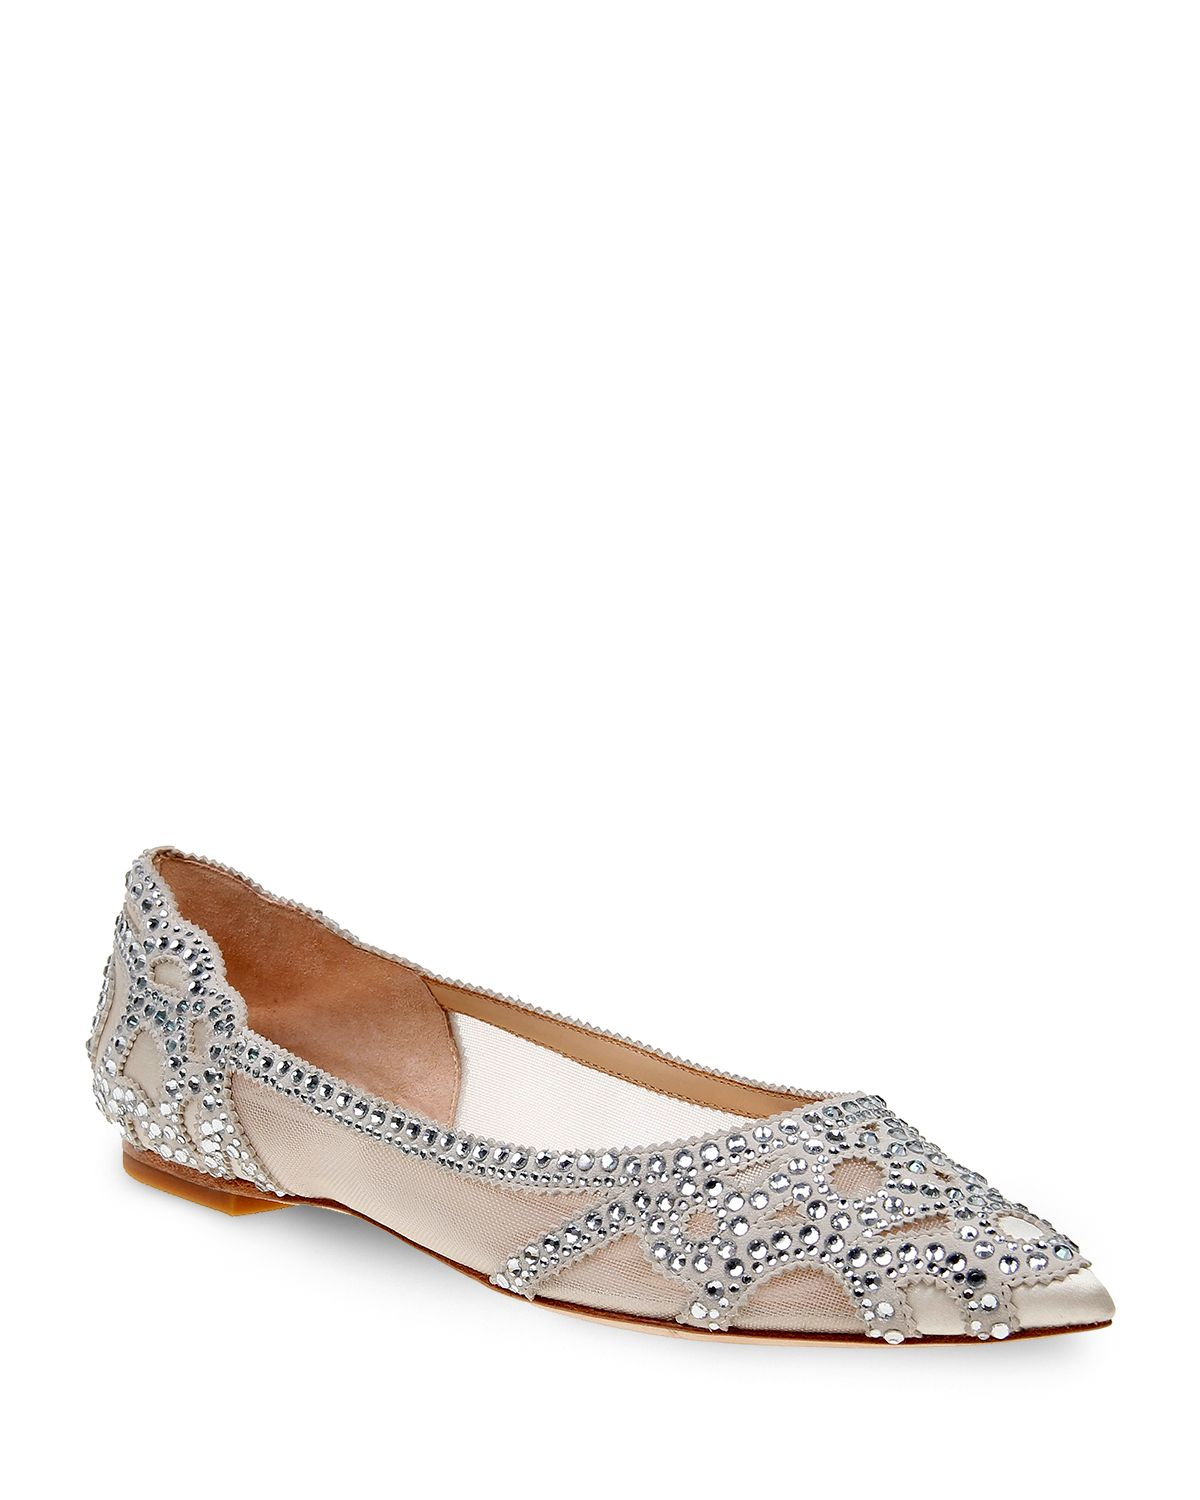 Women's Gigi Embellished Pointed Toe Flats by Badgley Mischka